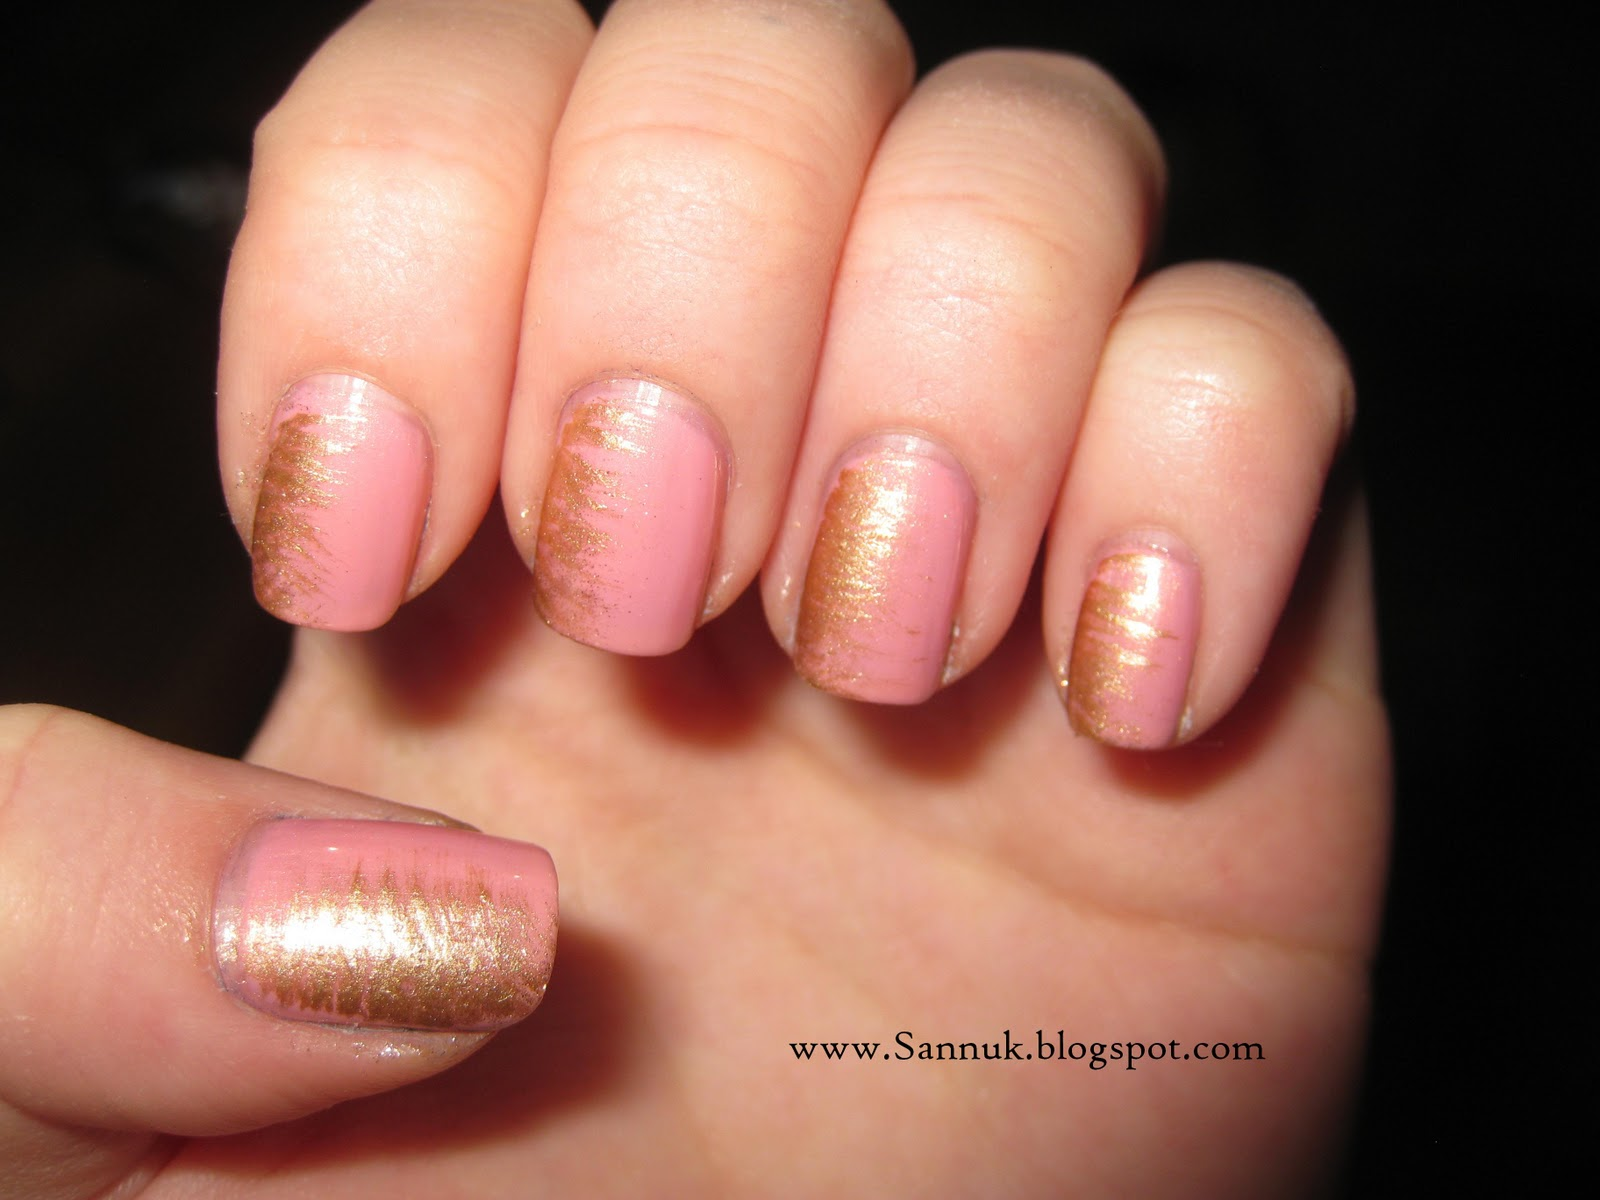 Sandra\'s Nails (not active anymore): Pink & Gold